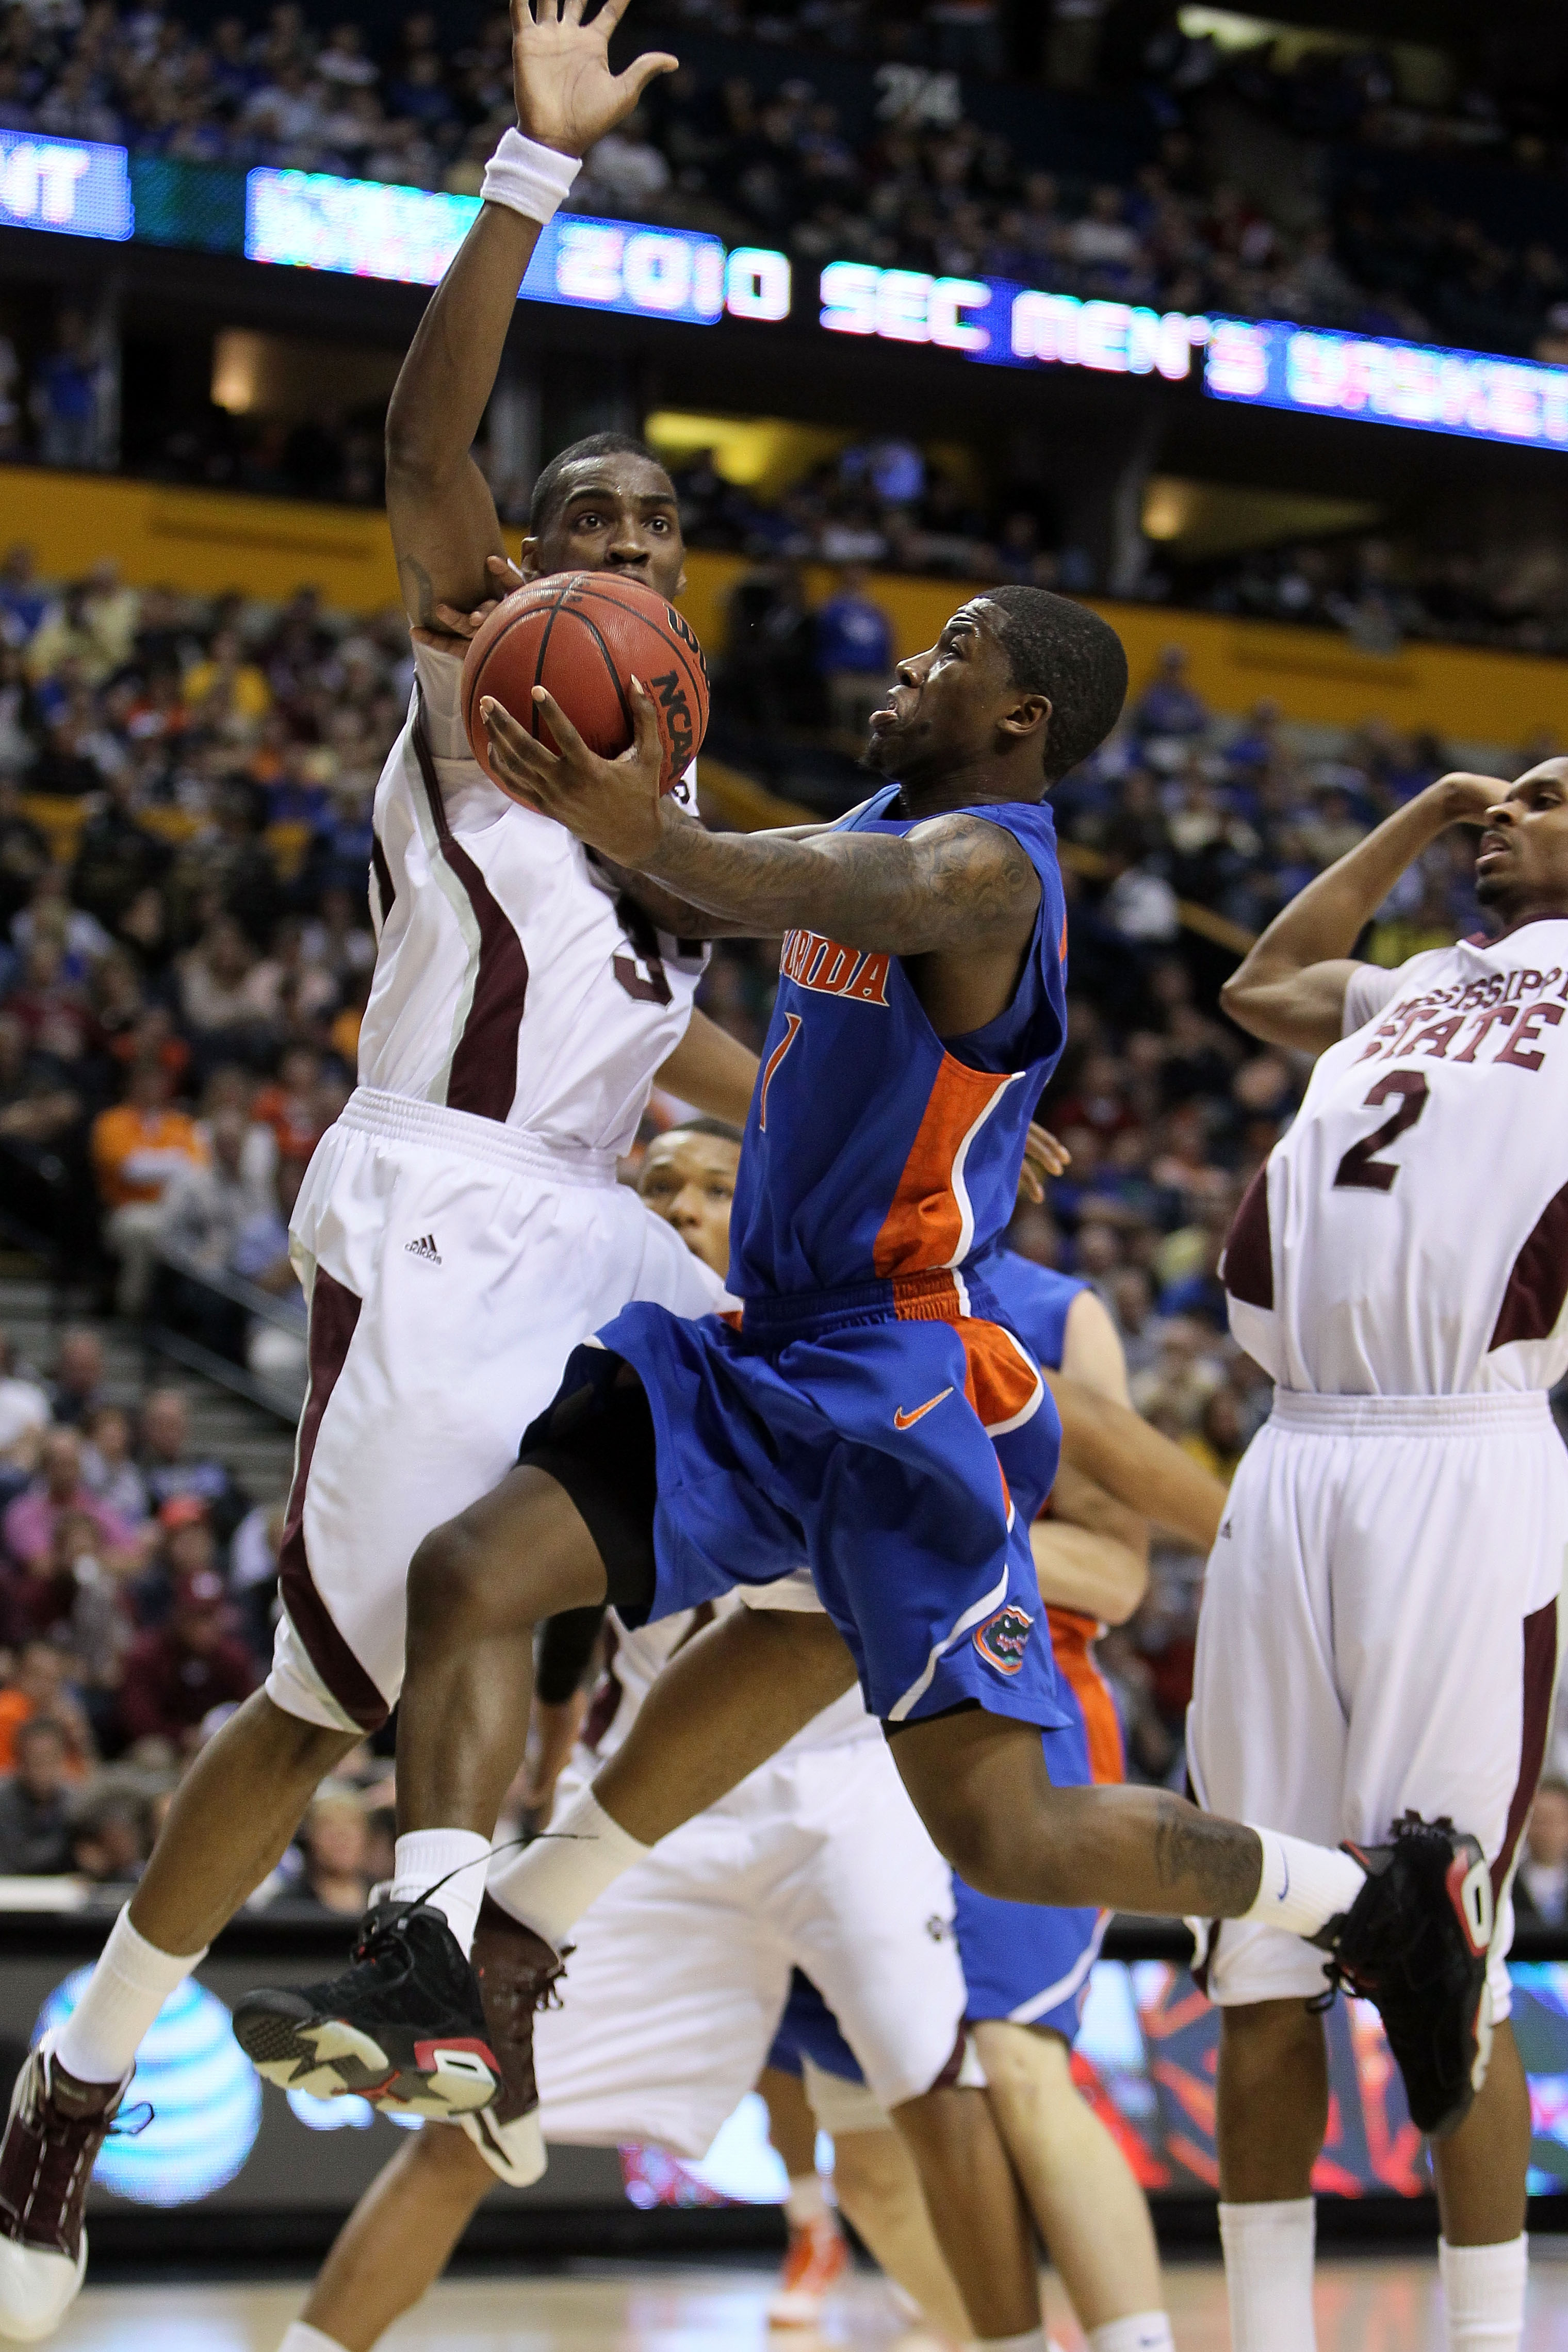 NASHVILLE, TN - MARCH 12:  Kenny Boynton #1 of the Florida Gators drives for a shot attempt against the Mississippi State Bulldogs during the quarterfinals of the SEC Men's Basketball Tournament at the Bridgestone Arena on March 12, 2010 in Nashville, Ten